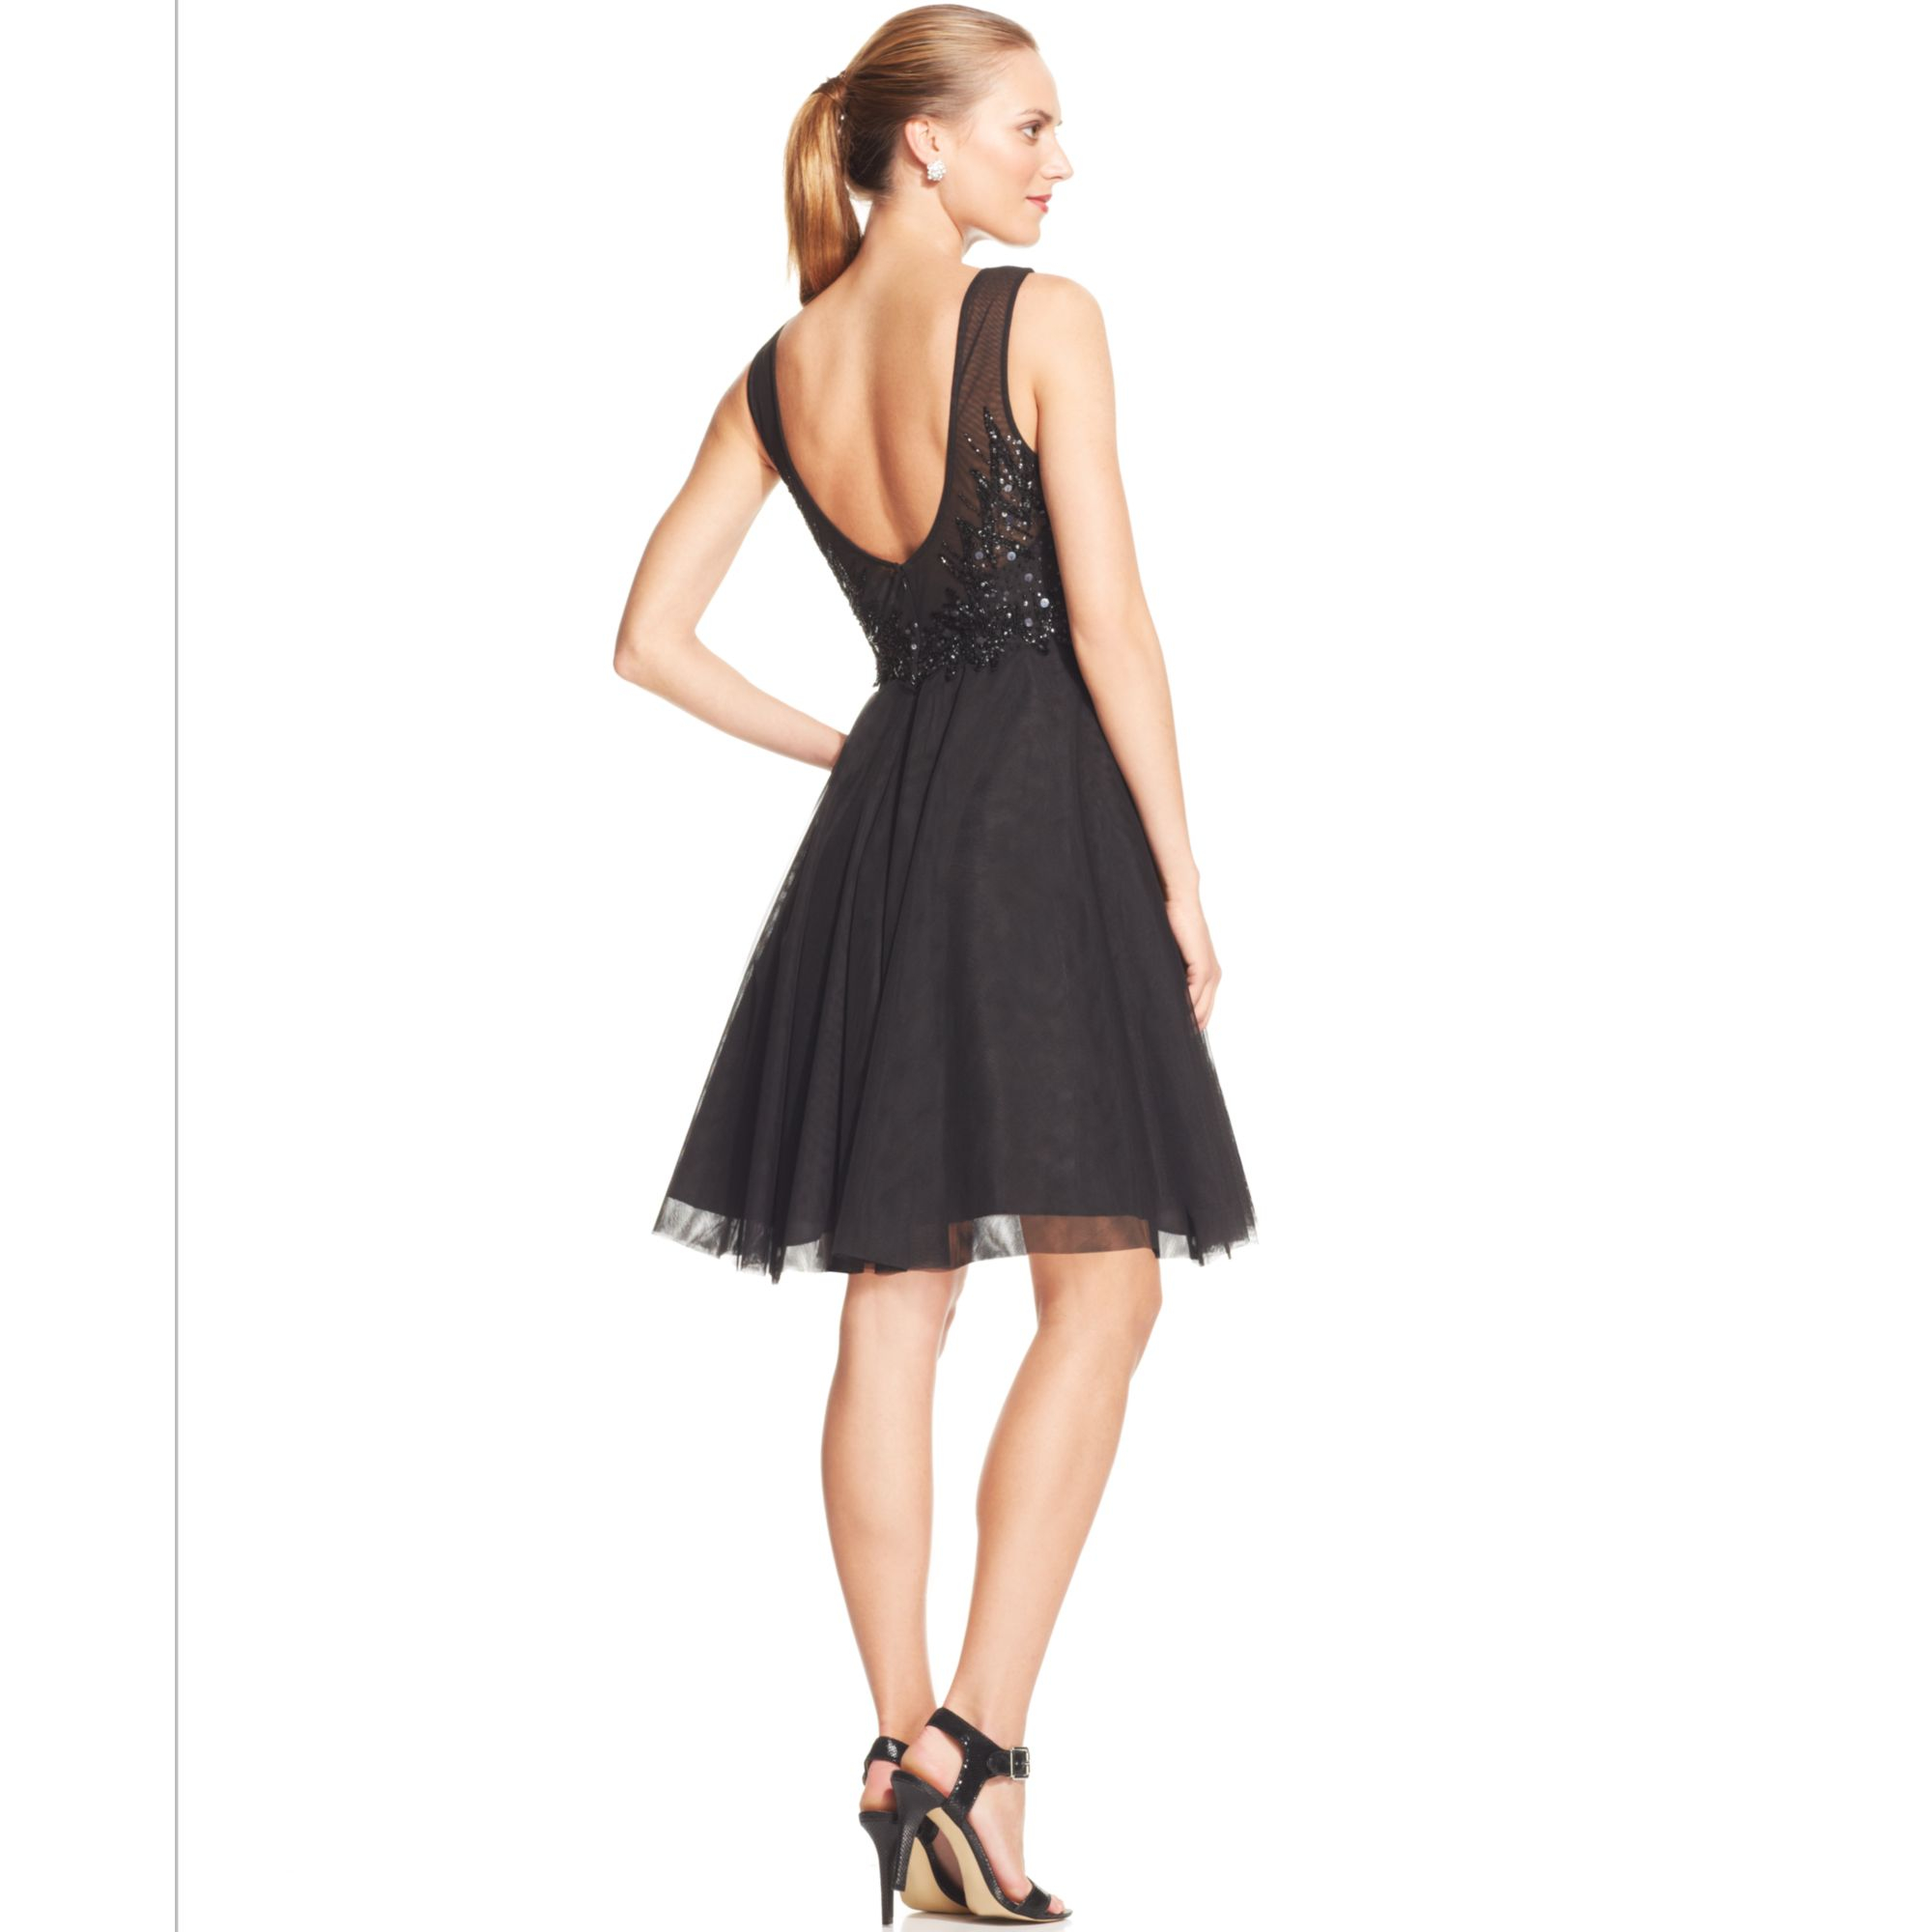 Black Illusion Dress: Adrianna Papell Sleeveless Embellished Illusion Dress In